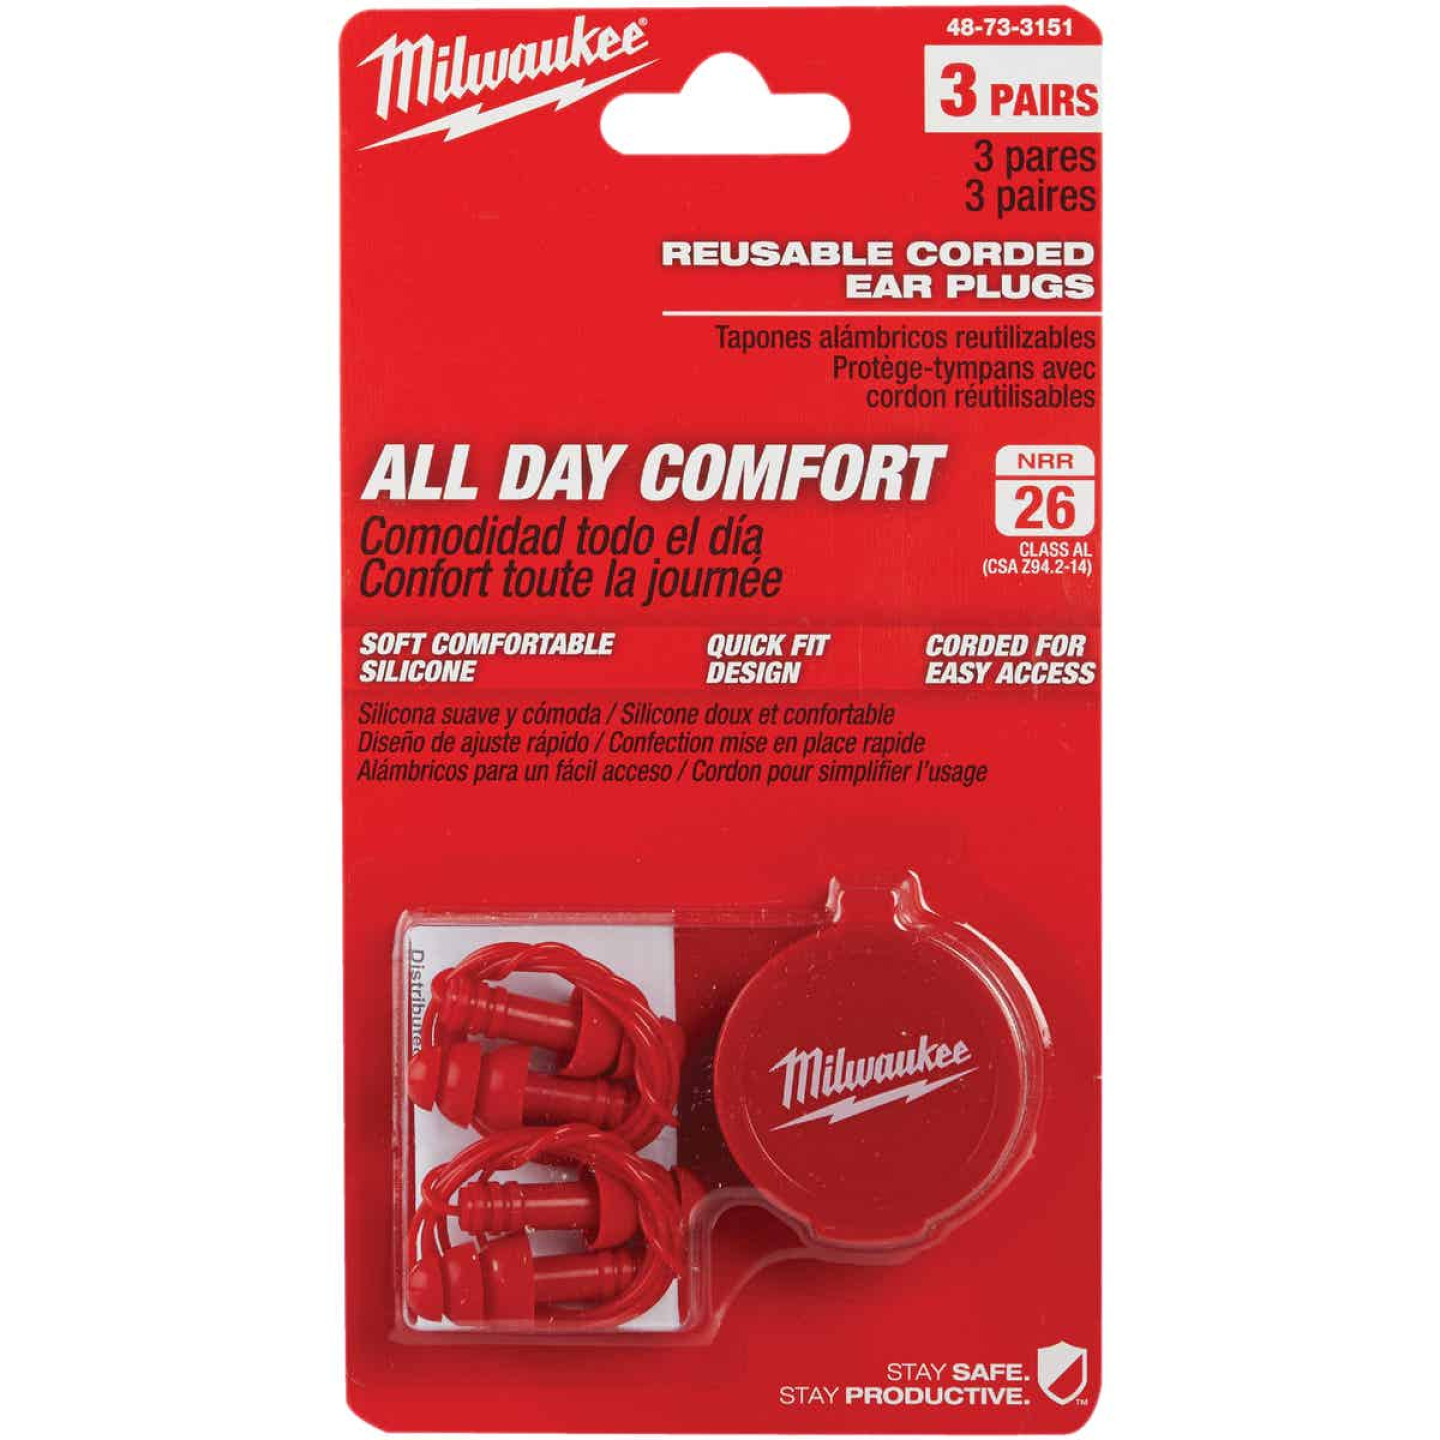 Milwaukee Silicone 26 dB Corded Ear Plugs (3-Pair) Image 2